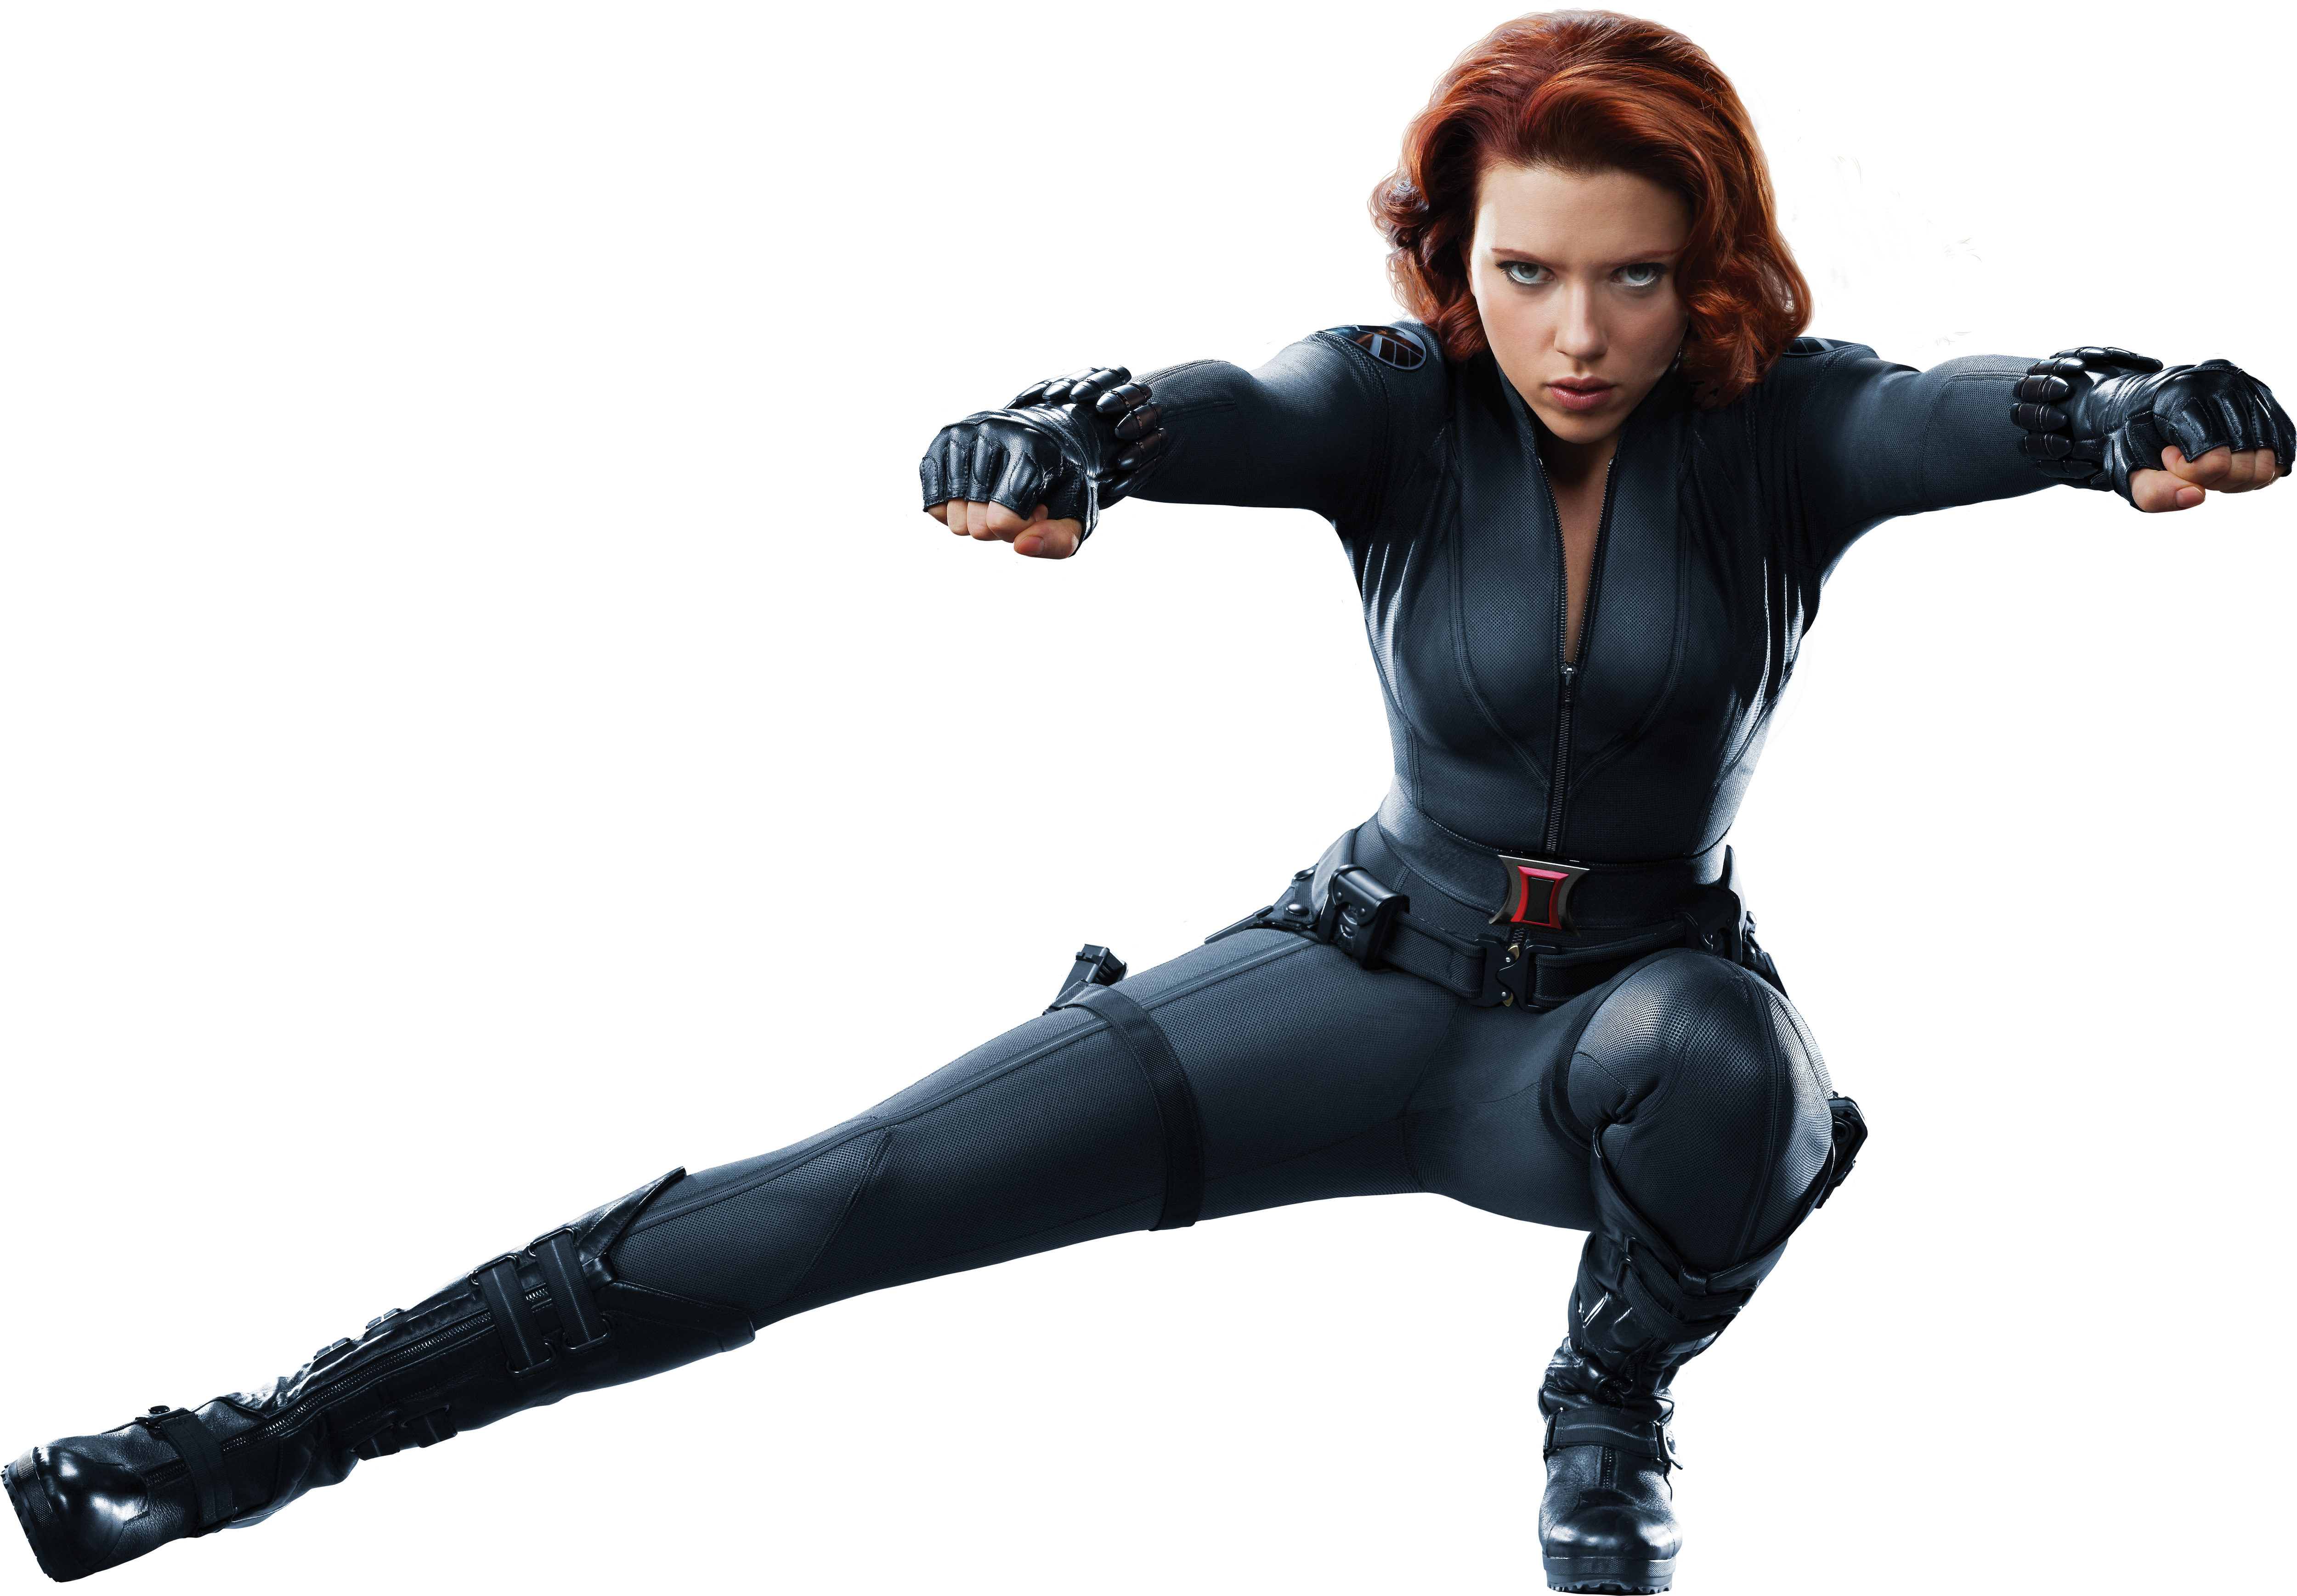 Marvel black widow - photo#5